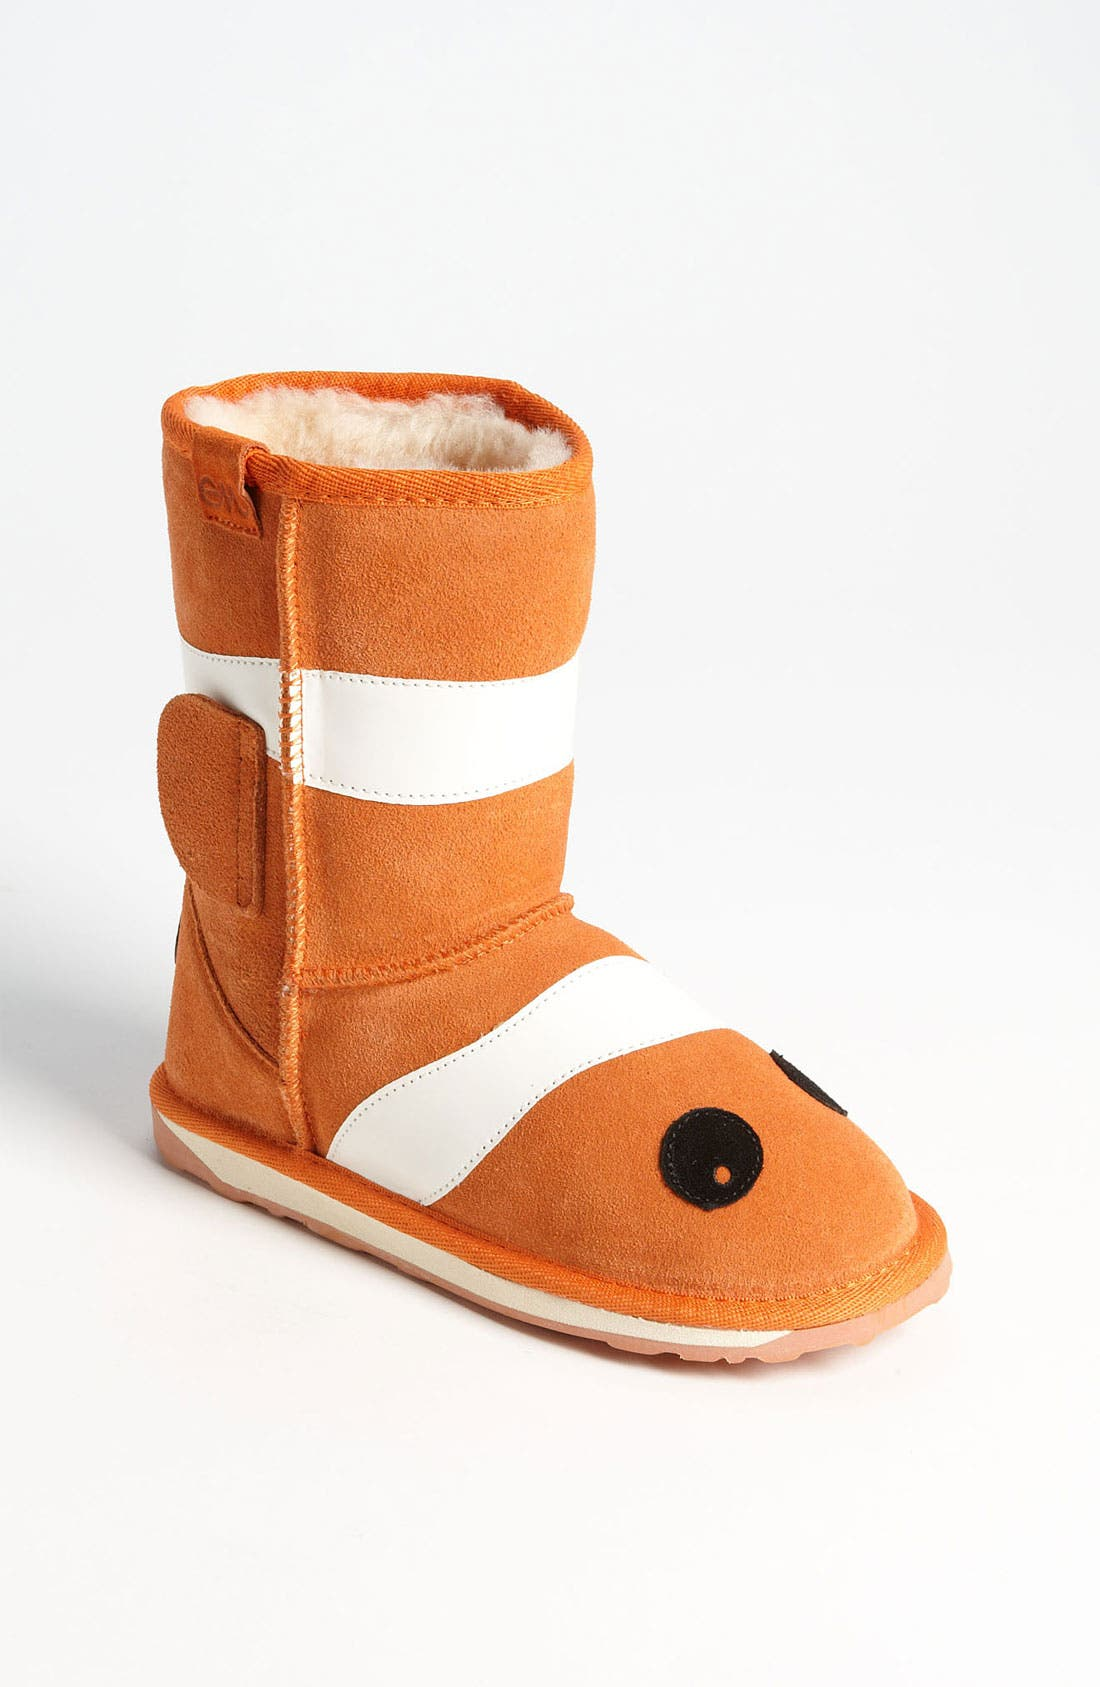 Main Image - EMU Australia 'Little Creatures - Clown Fish' Boot (Toddler, Little Kid & Big Kid)